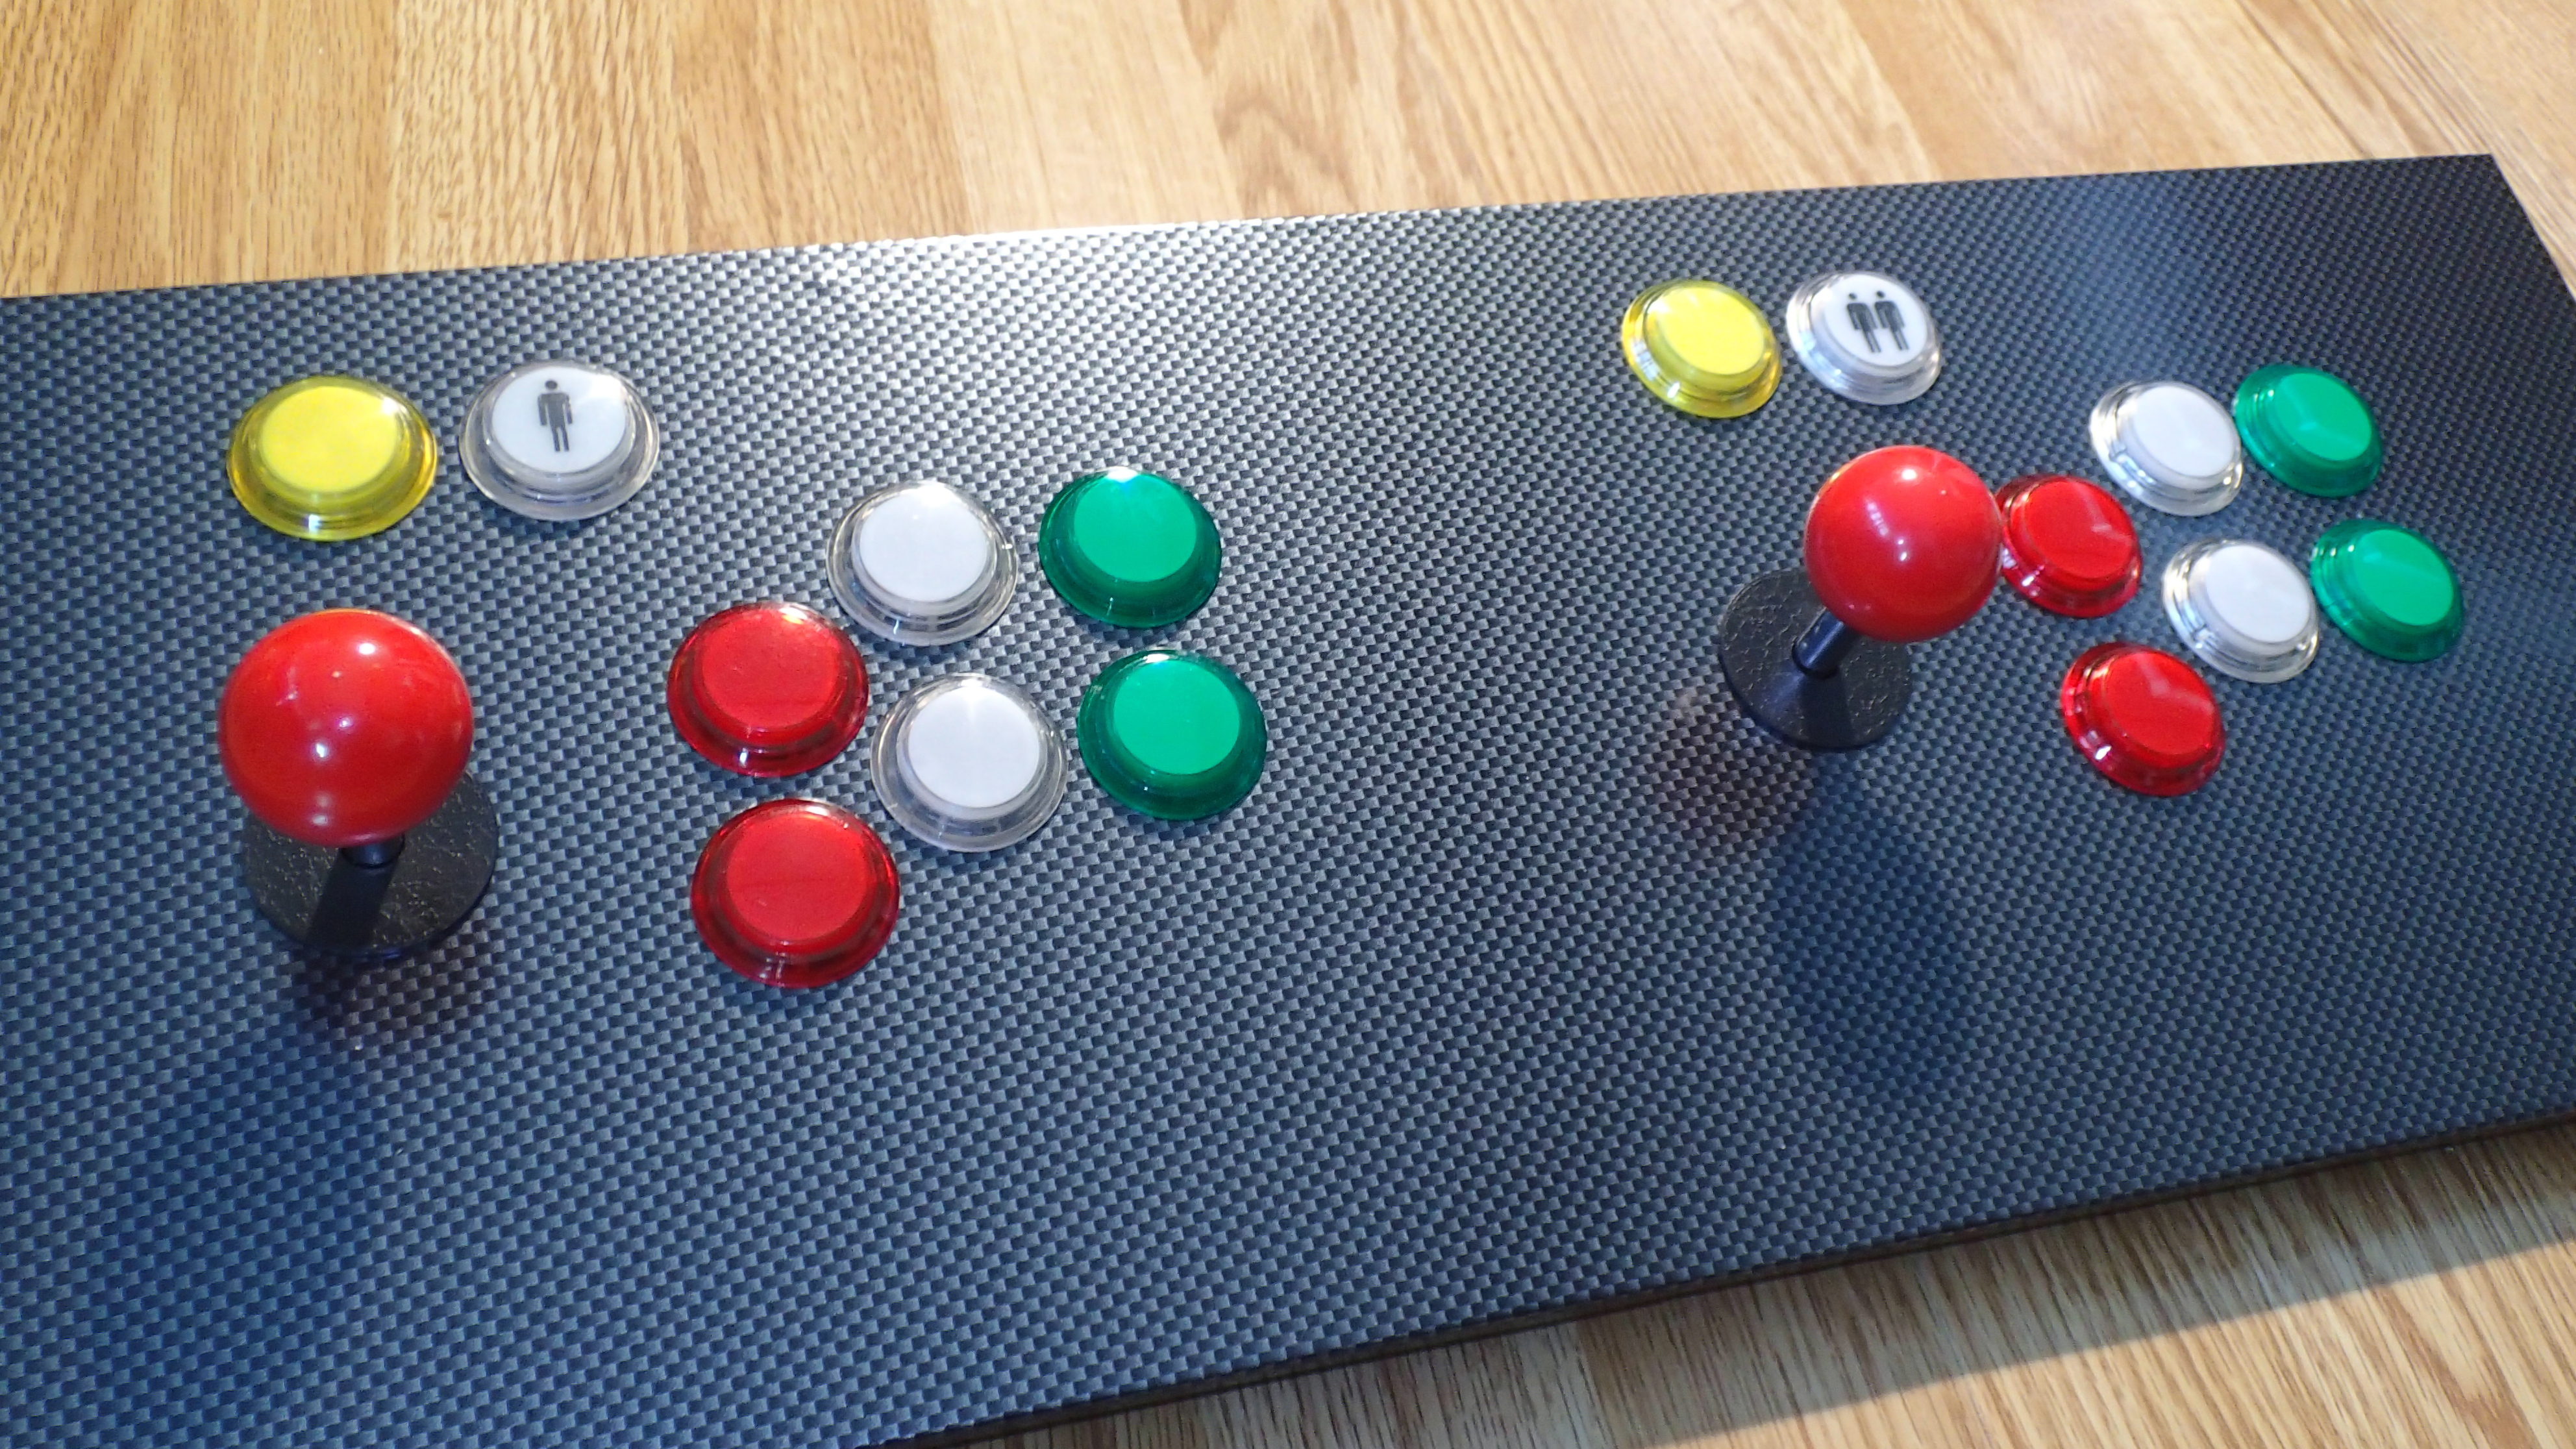 Bartop Arcade Cabinet - Part 4: Control Panel | ezContents blog